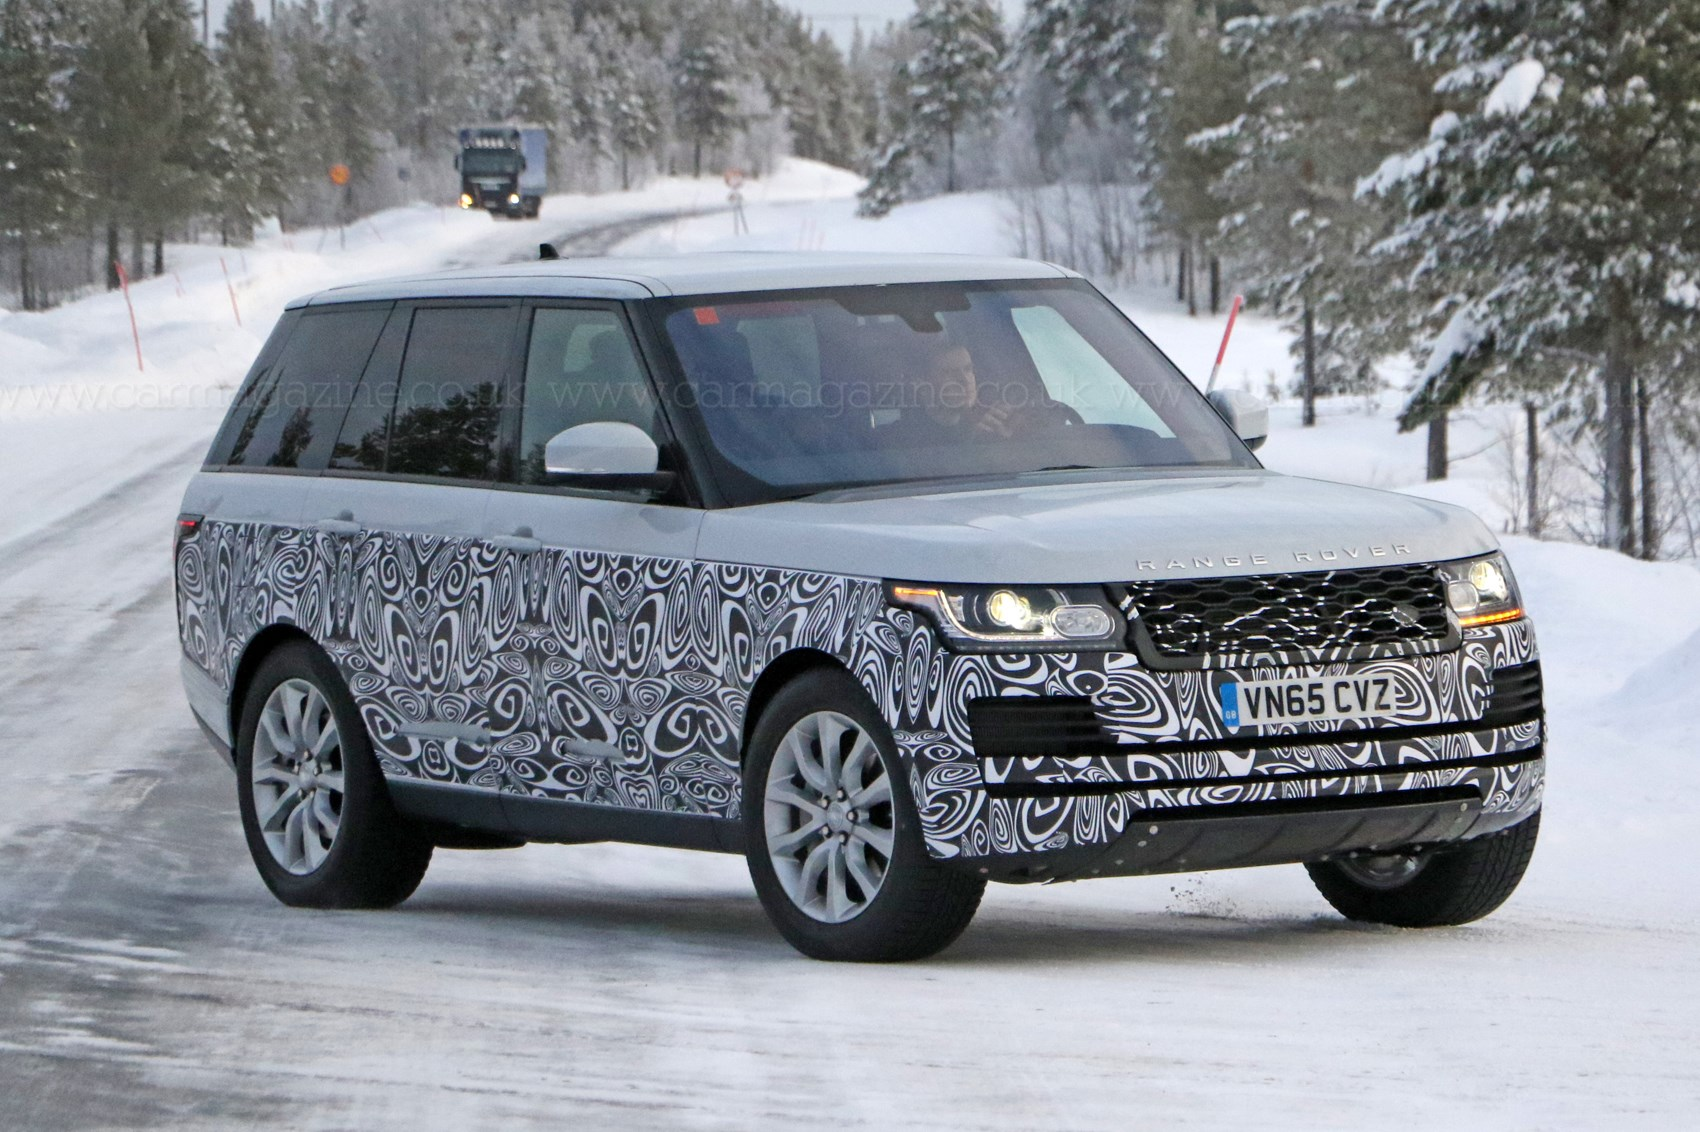 More Info On Land Rover Range